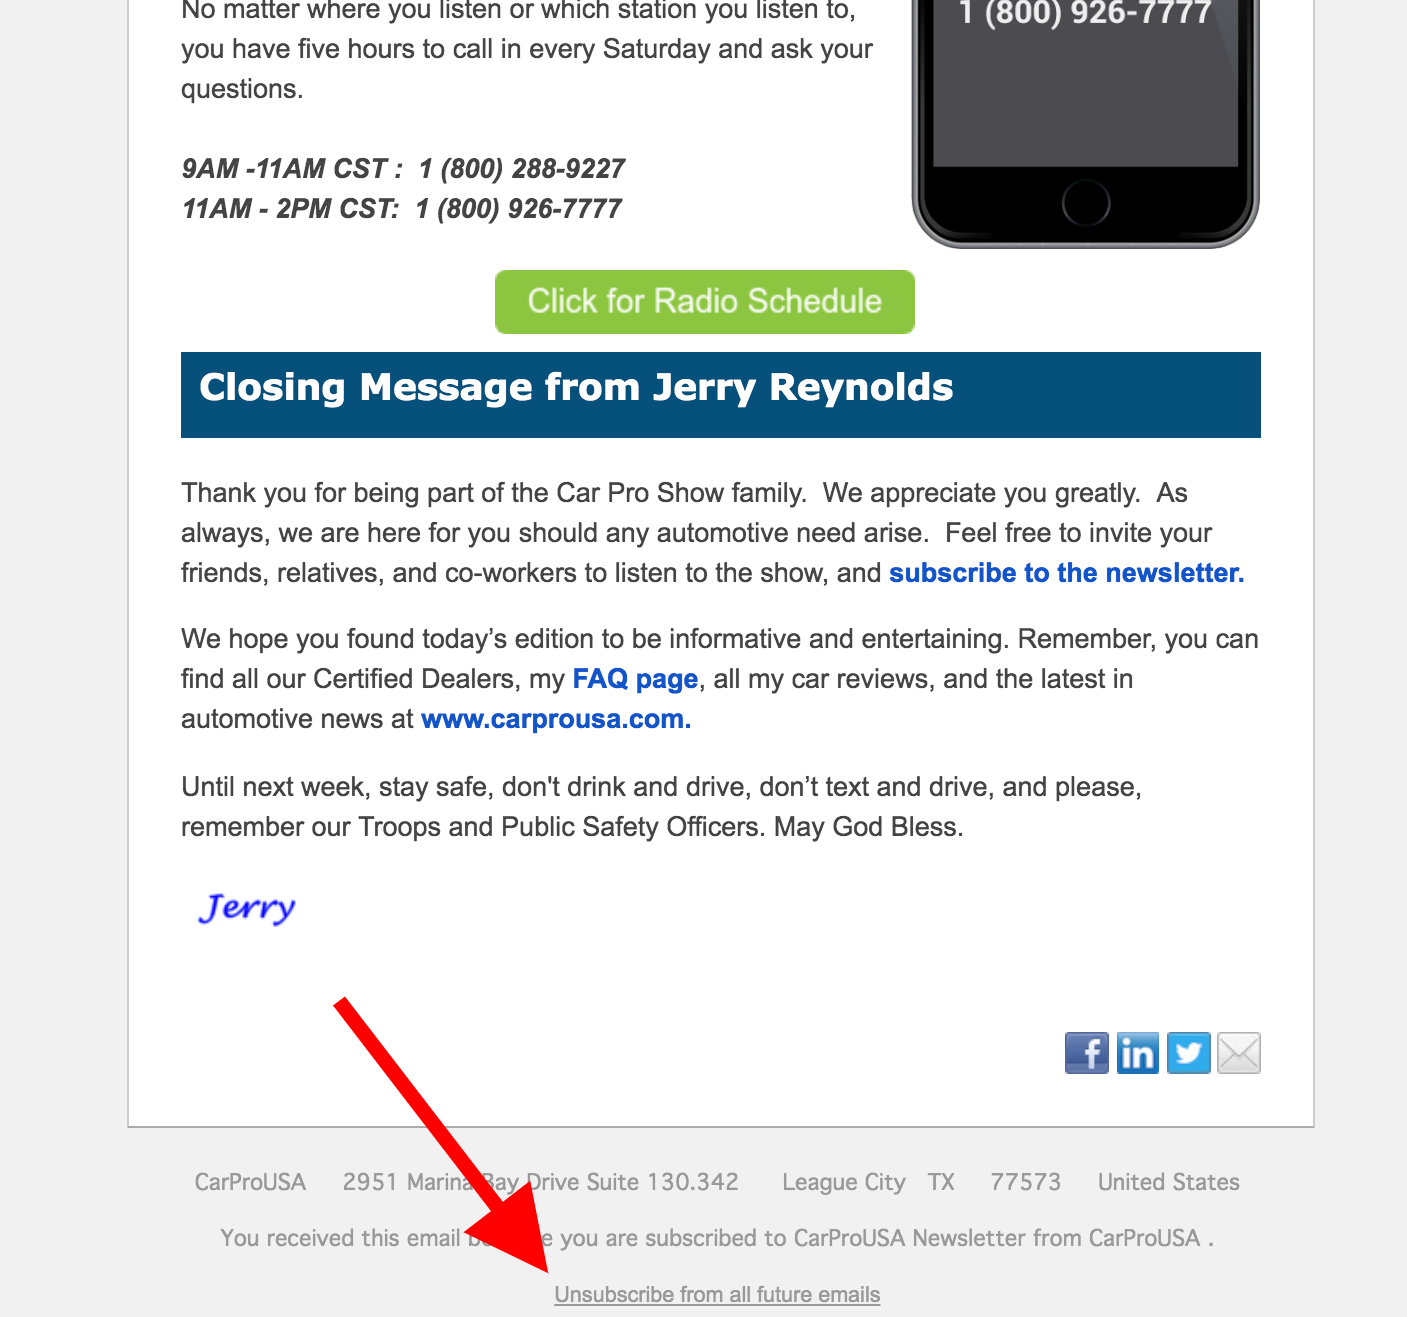 Unsubscribe from the CarProUSA National Newsletter